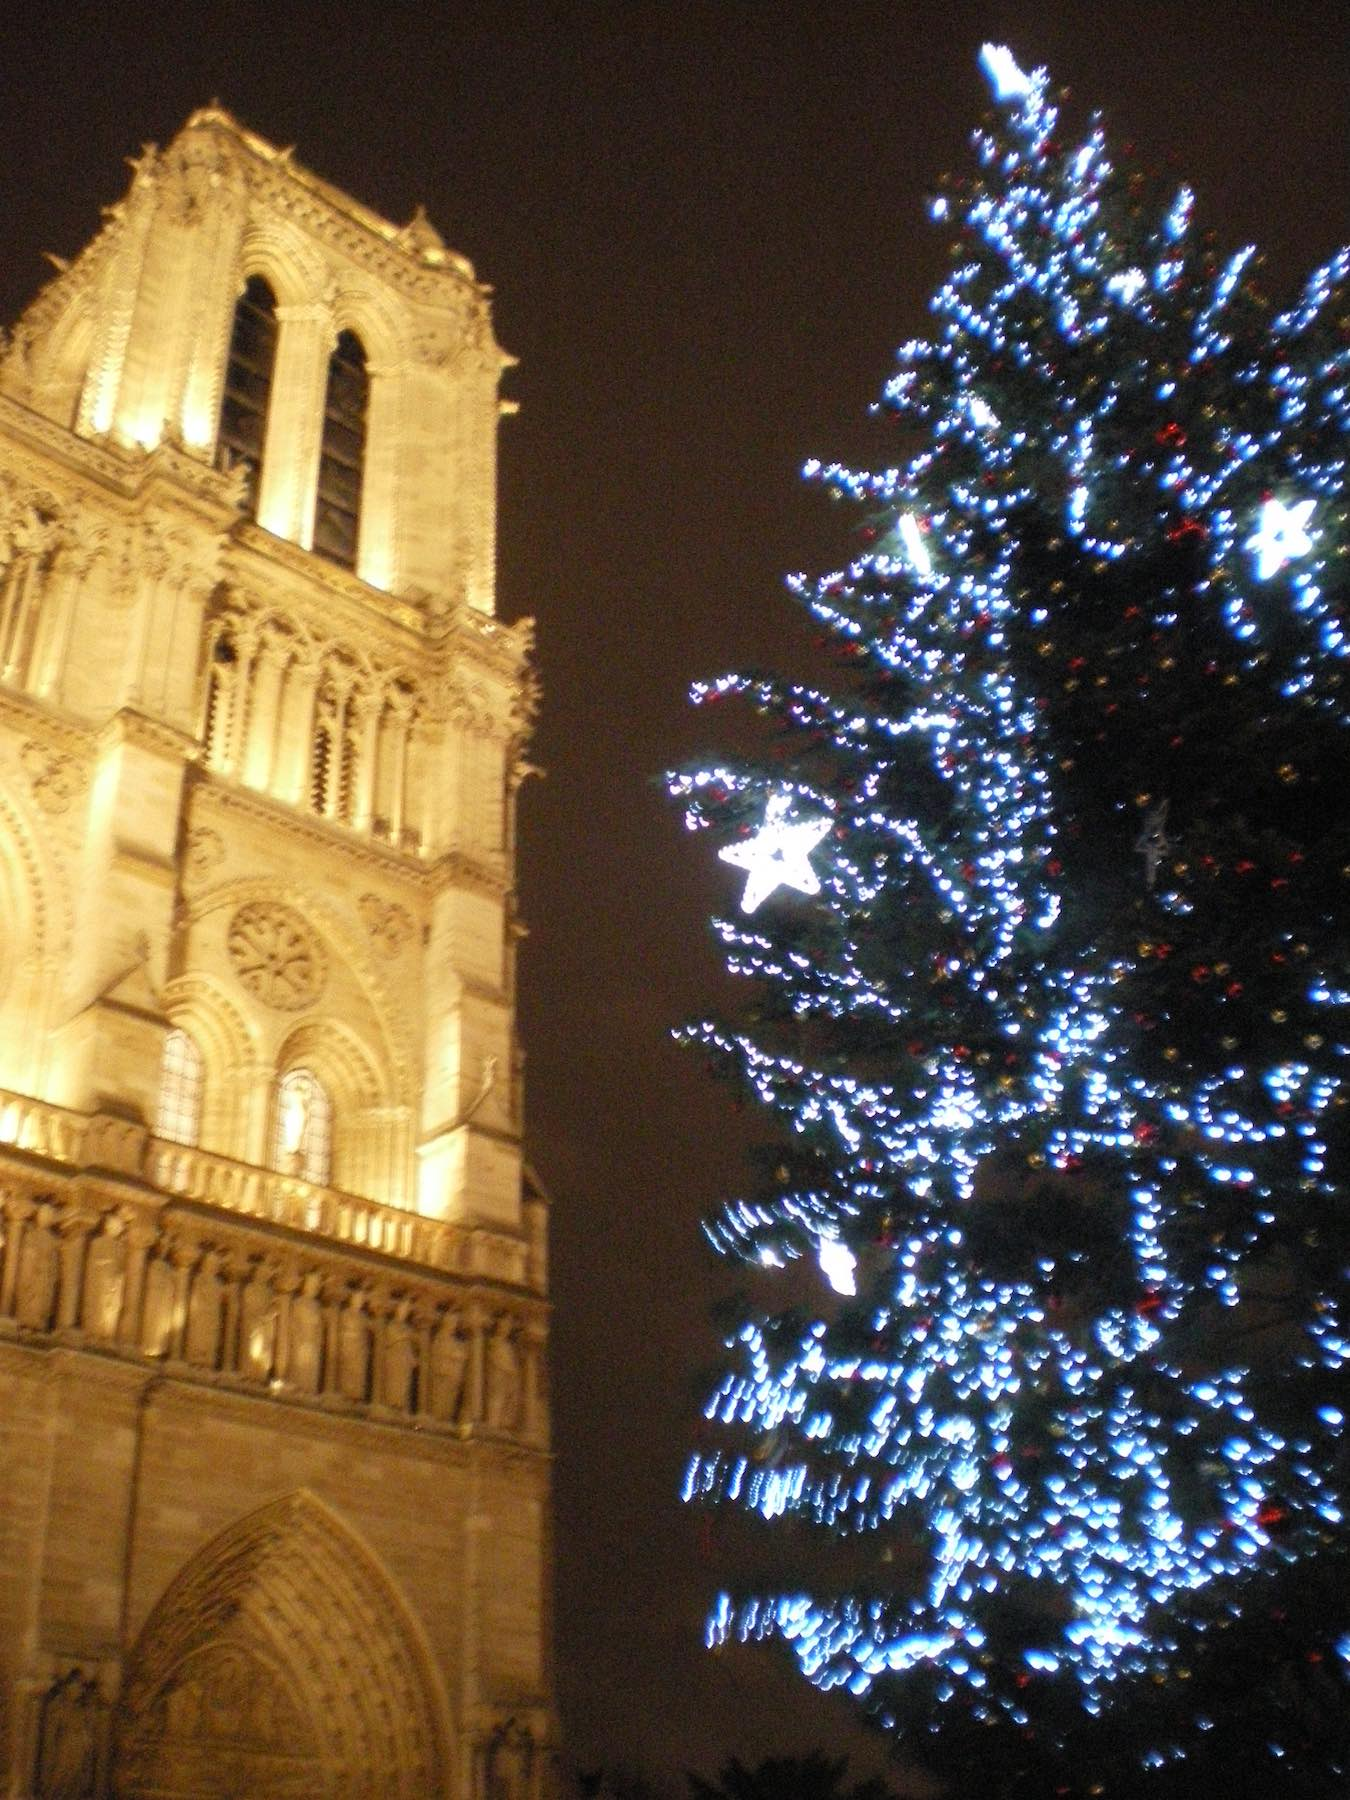 Notre Dame by night with Christmas Tree